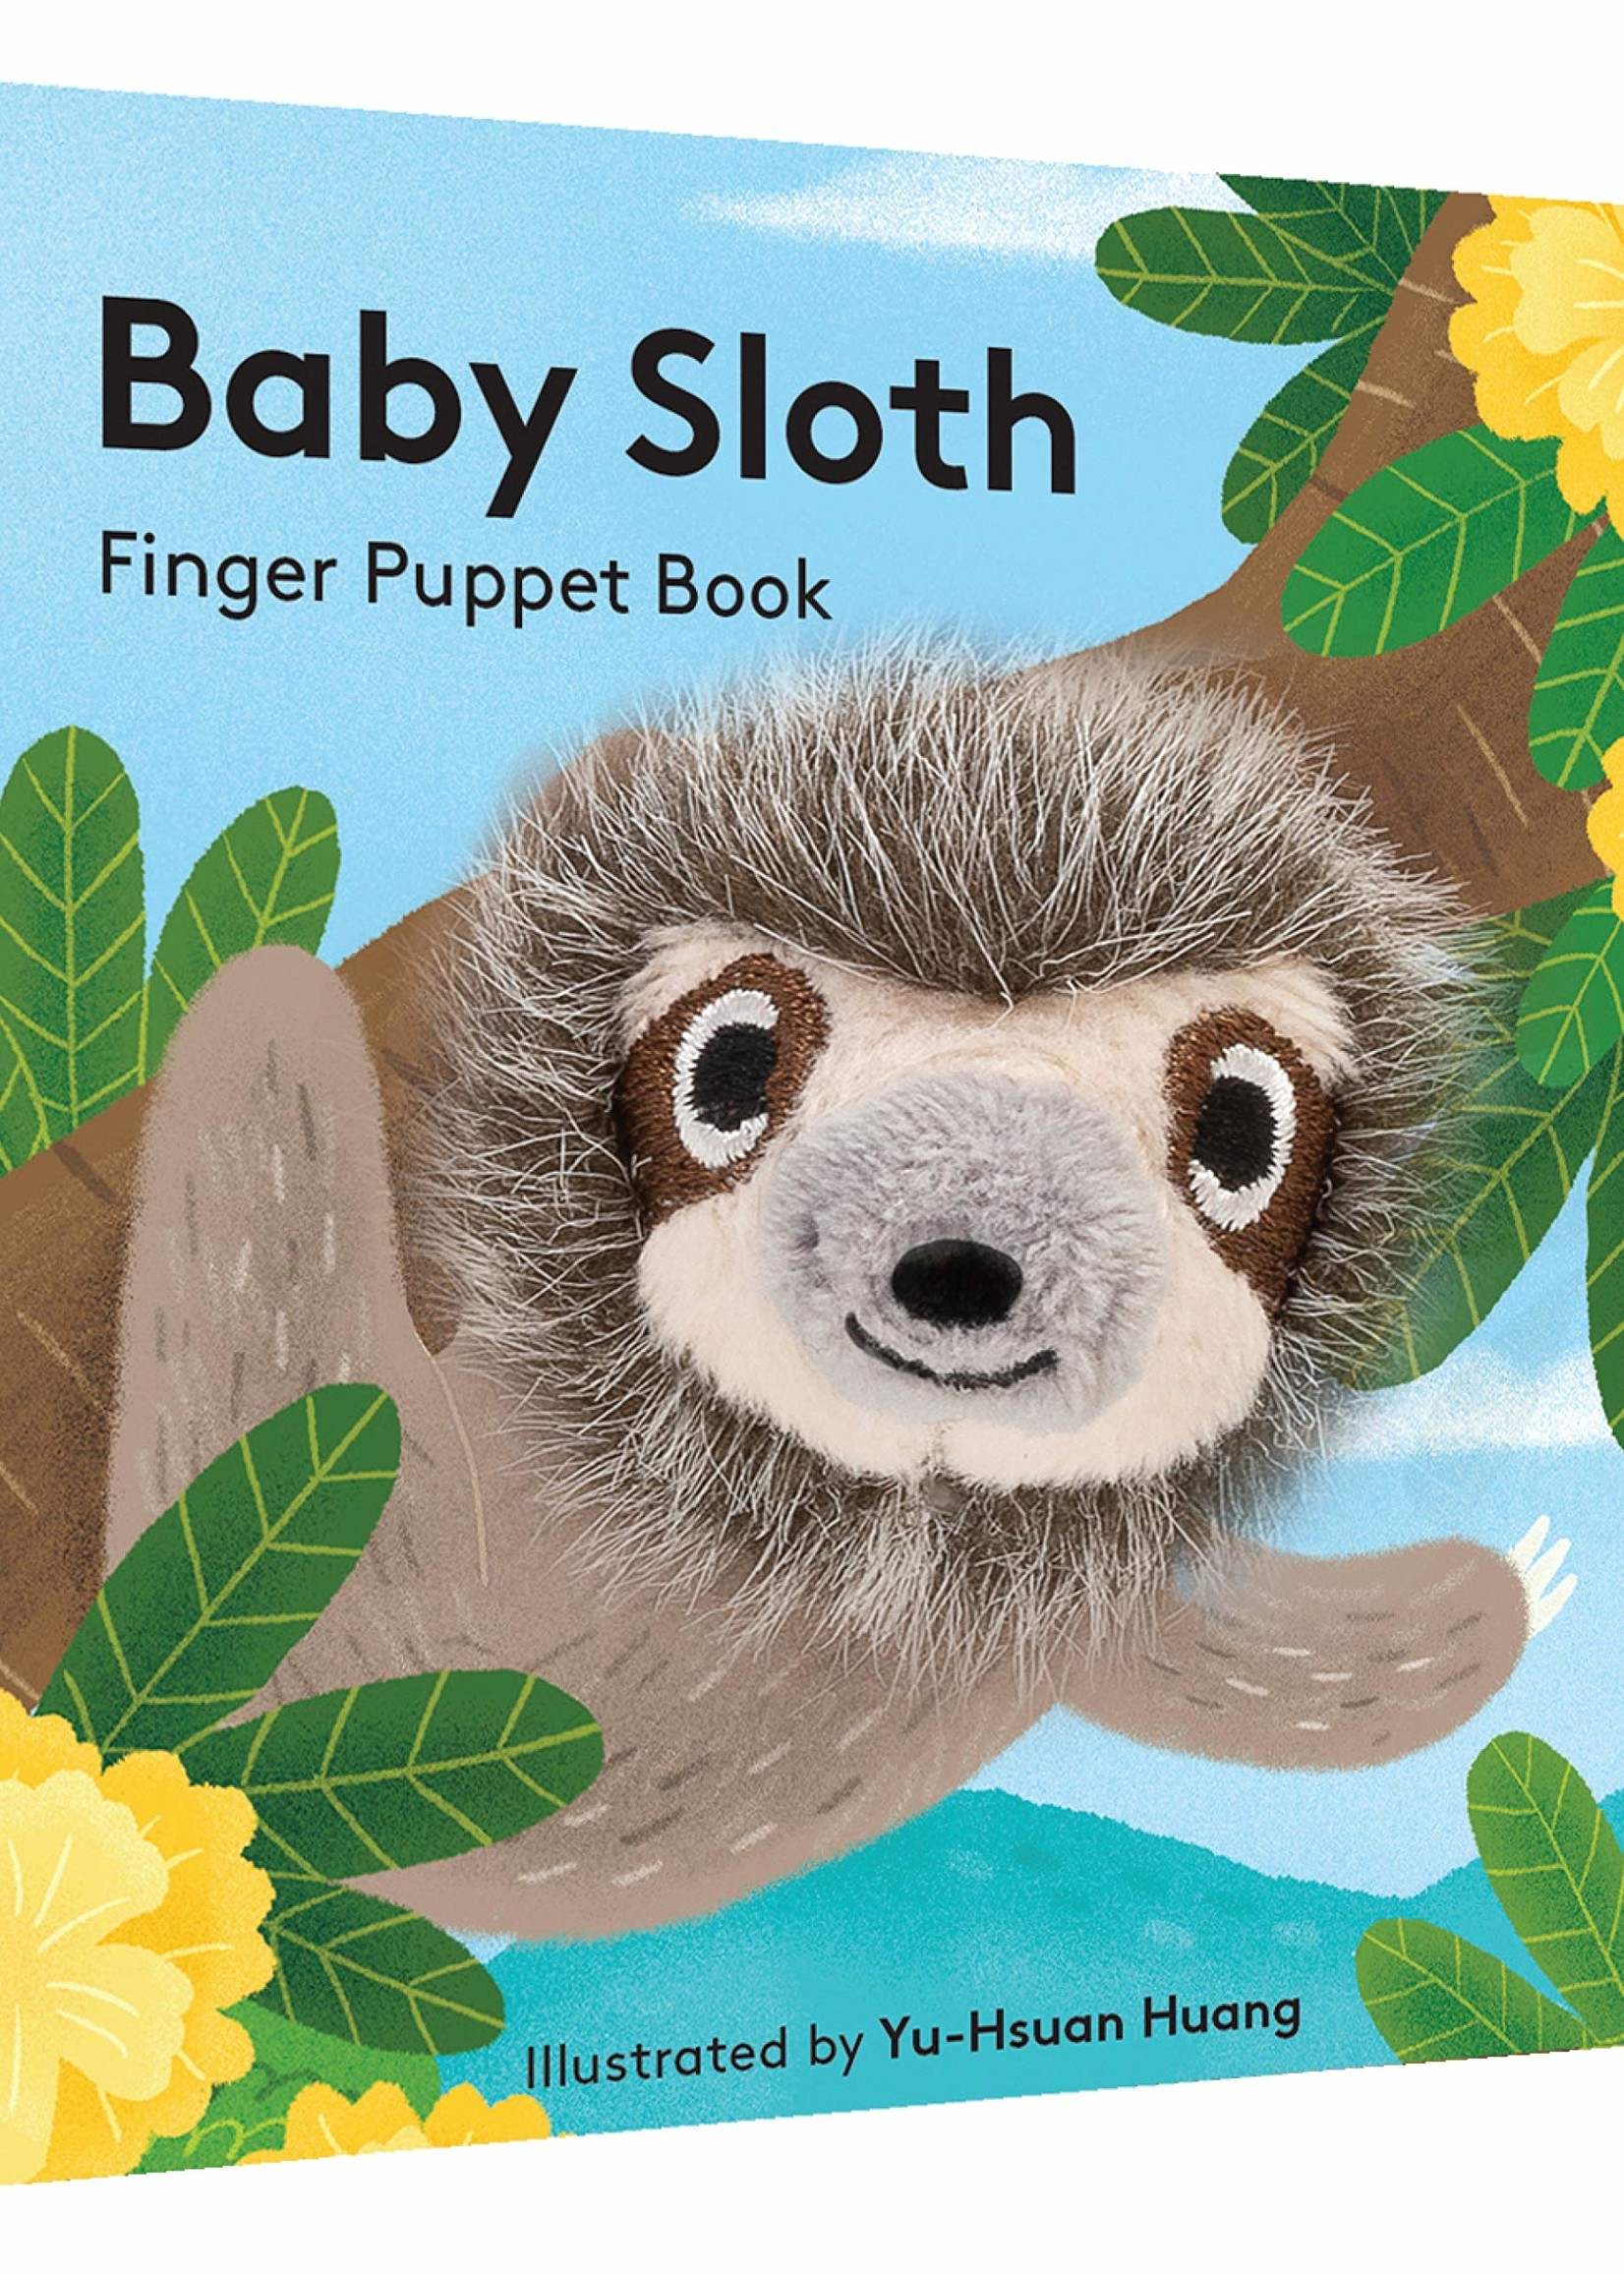 Chronicle Books BABY SLOTH FINGER PUPPET BOOK